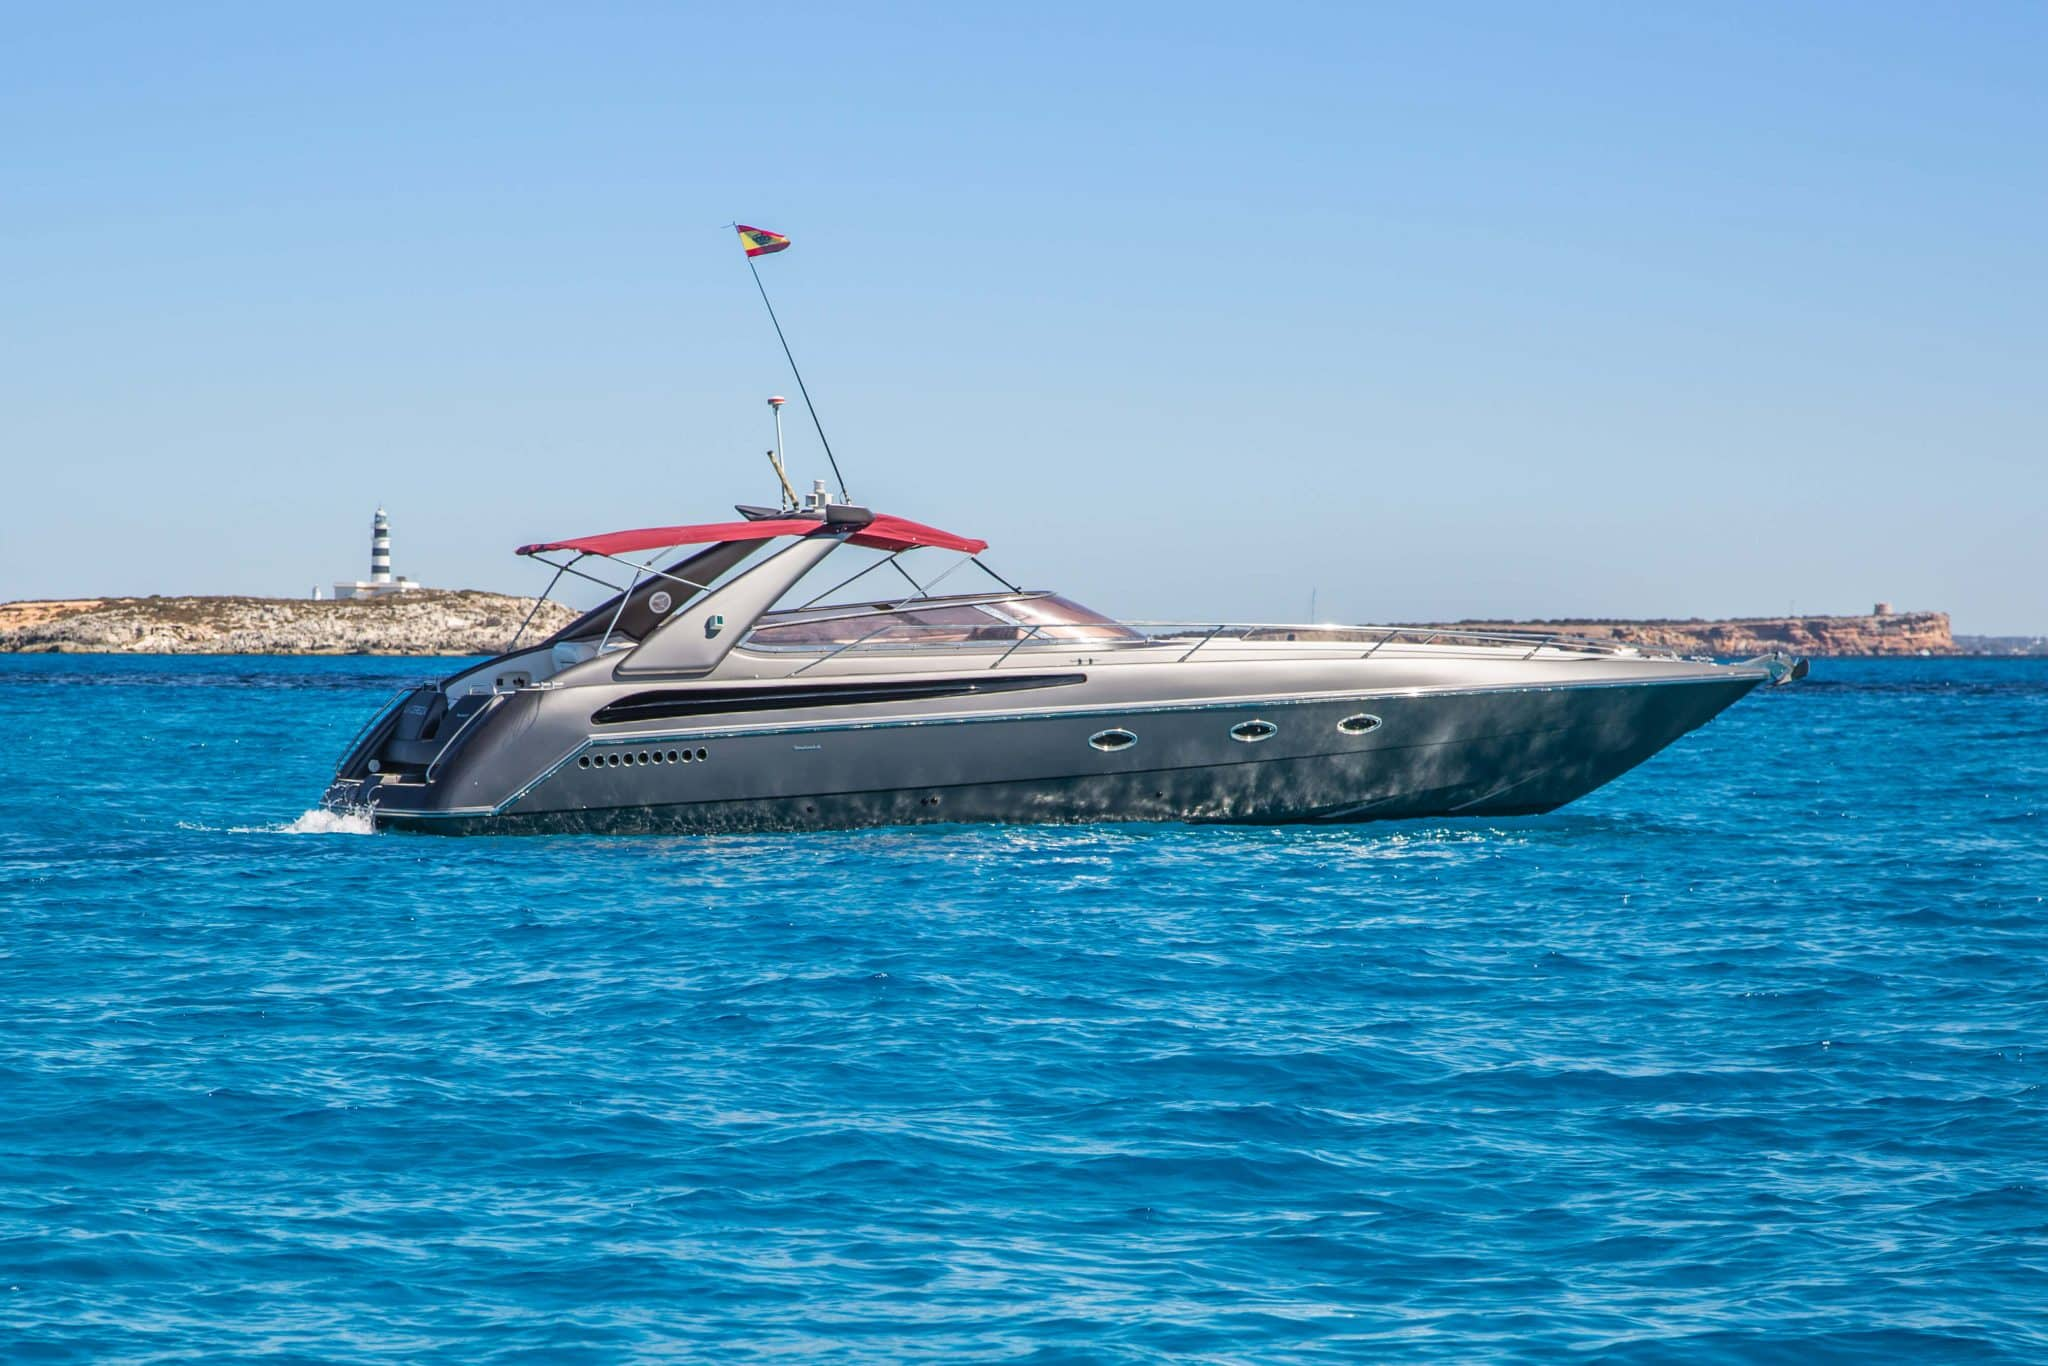 Still image of our rental boat the Sunseeker Tomahawk 41 in front of a light house